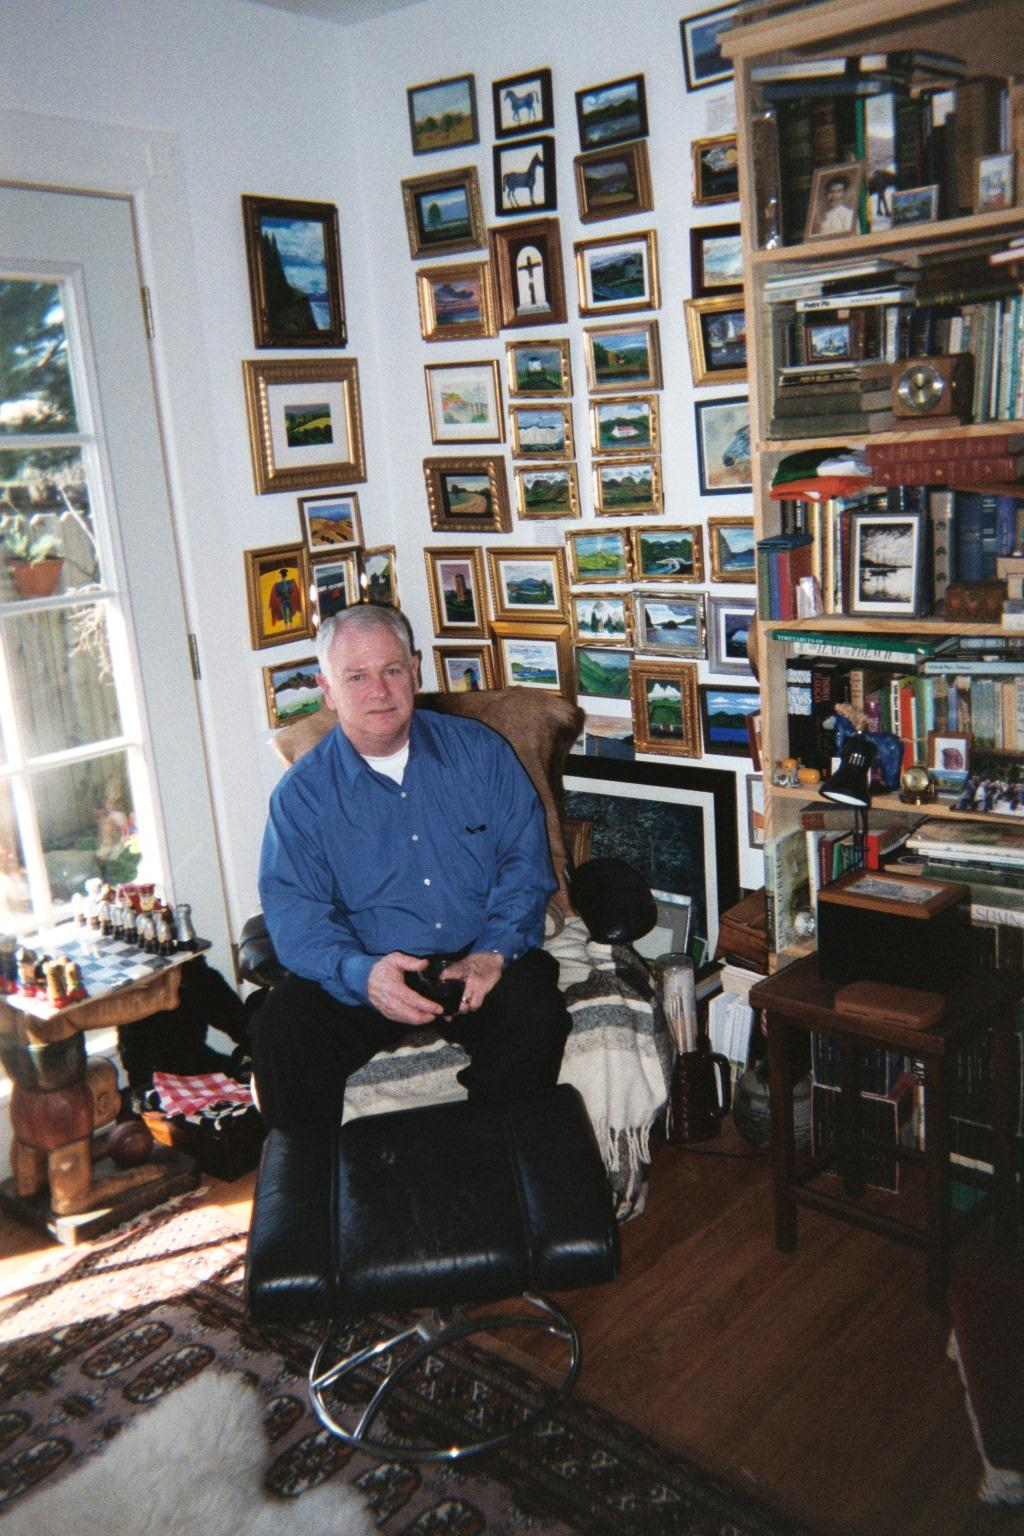 Philip and some of his paintings